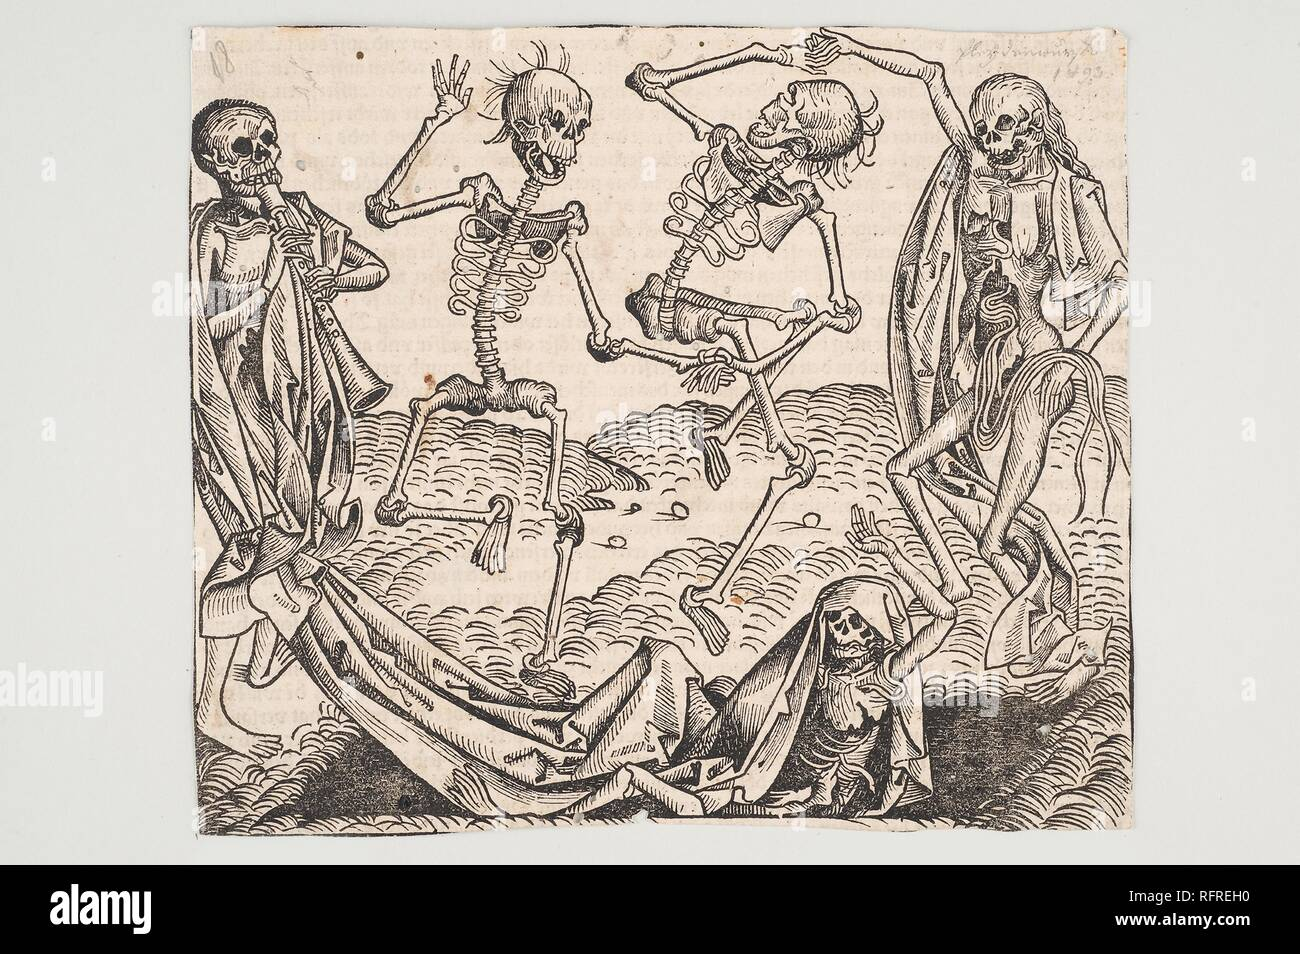 Dance of Death (from the Schedel's Chronicle of the World). Museum: Universalmuseum Joanneum. Author: WOLGEMUT, MICHAEL. - Stock Image